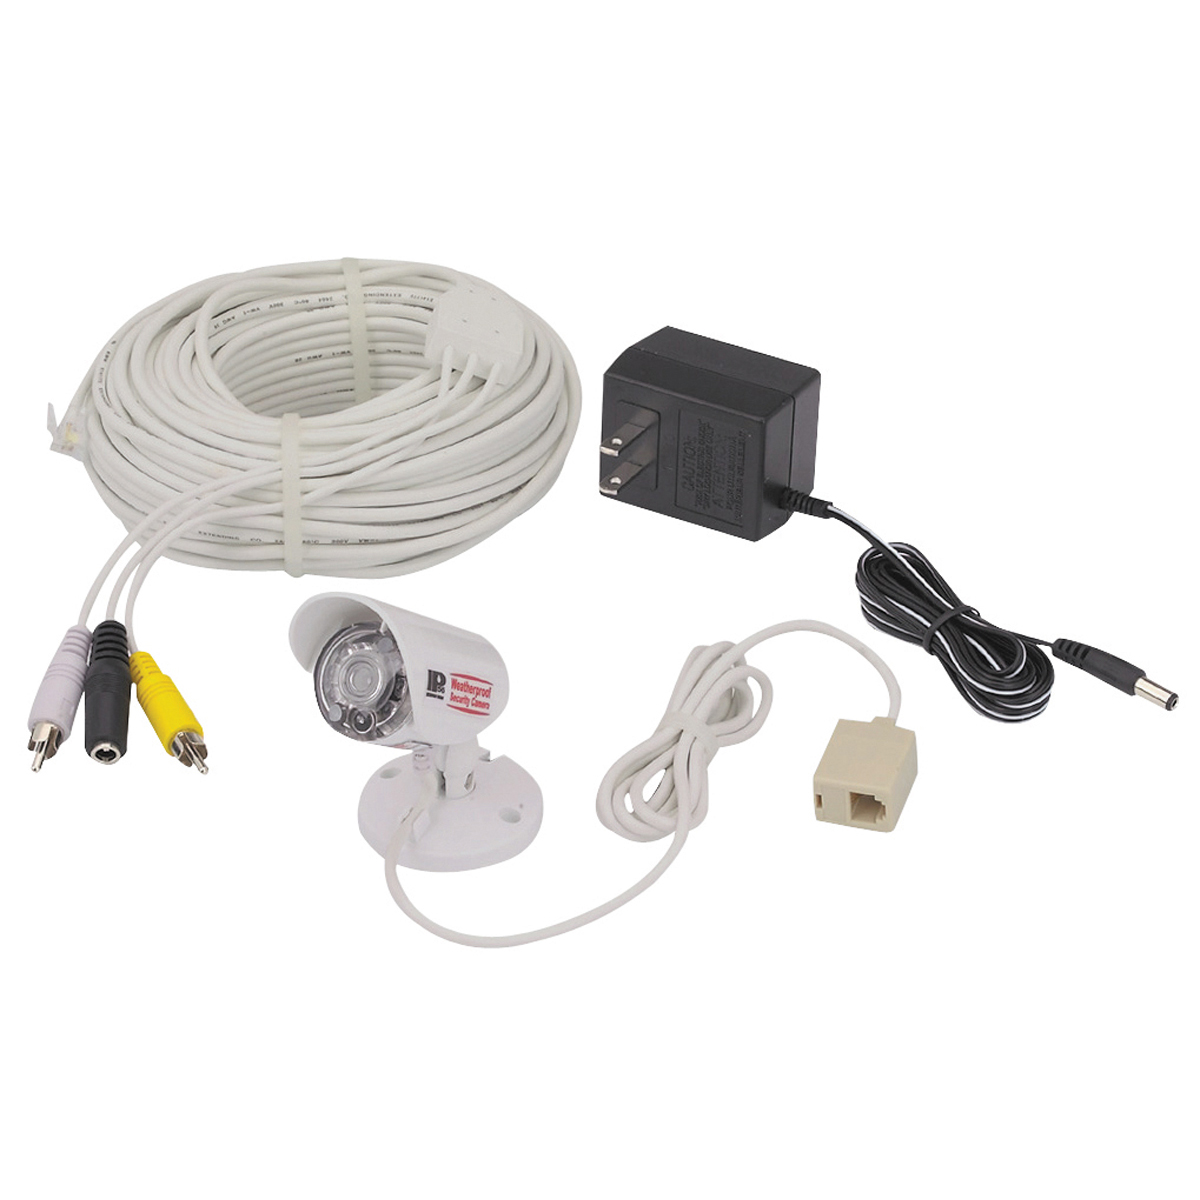 Weatherproof Security Camera With Night Vision Dome Wiring Diagram